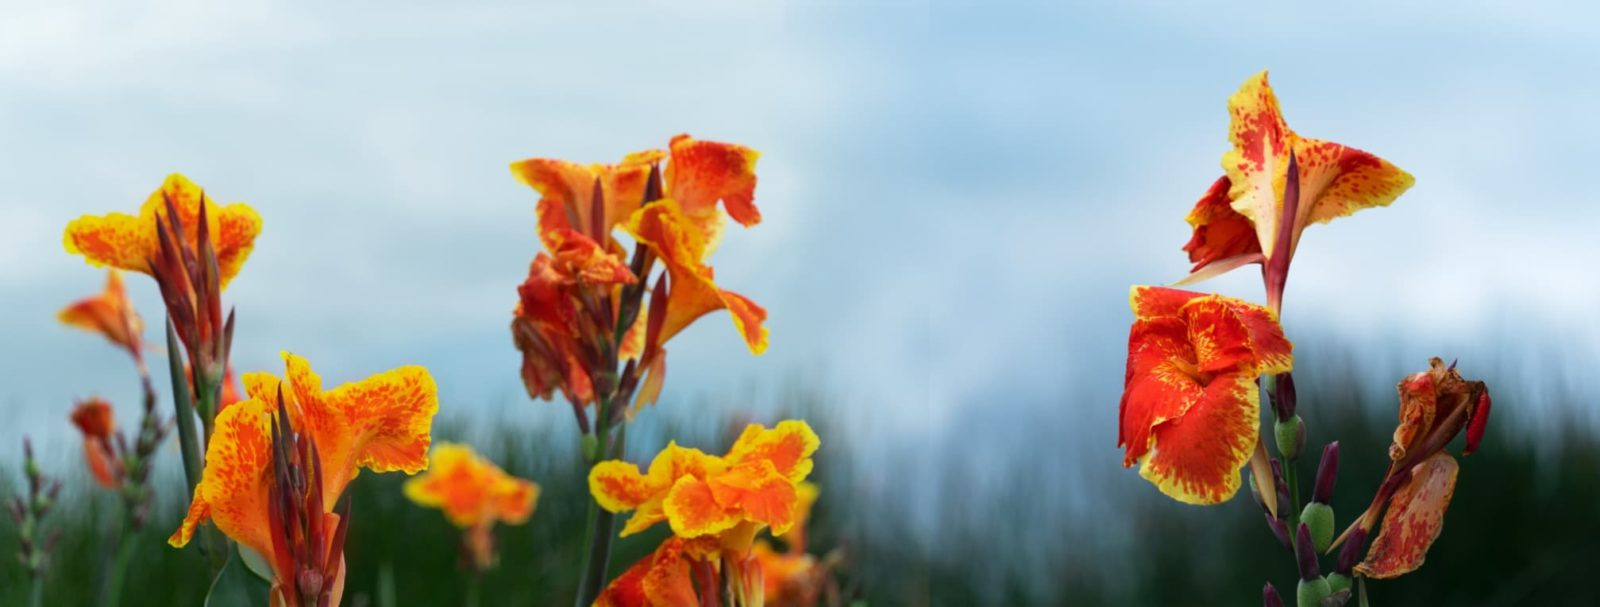 red and orange canna lilies with sky in background